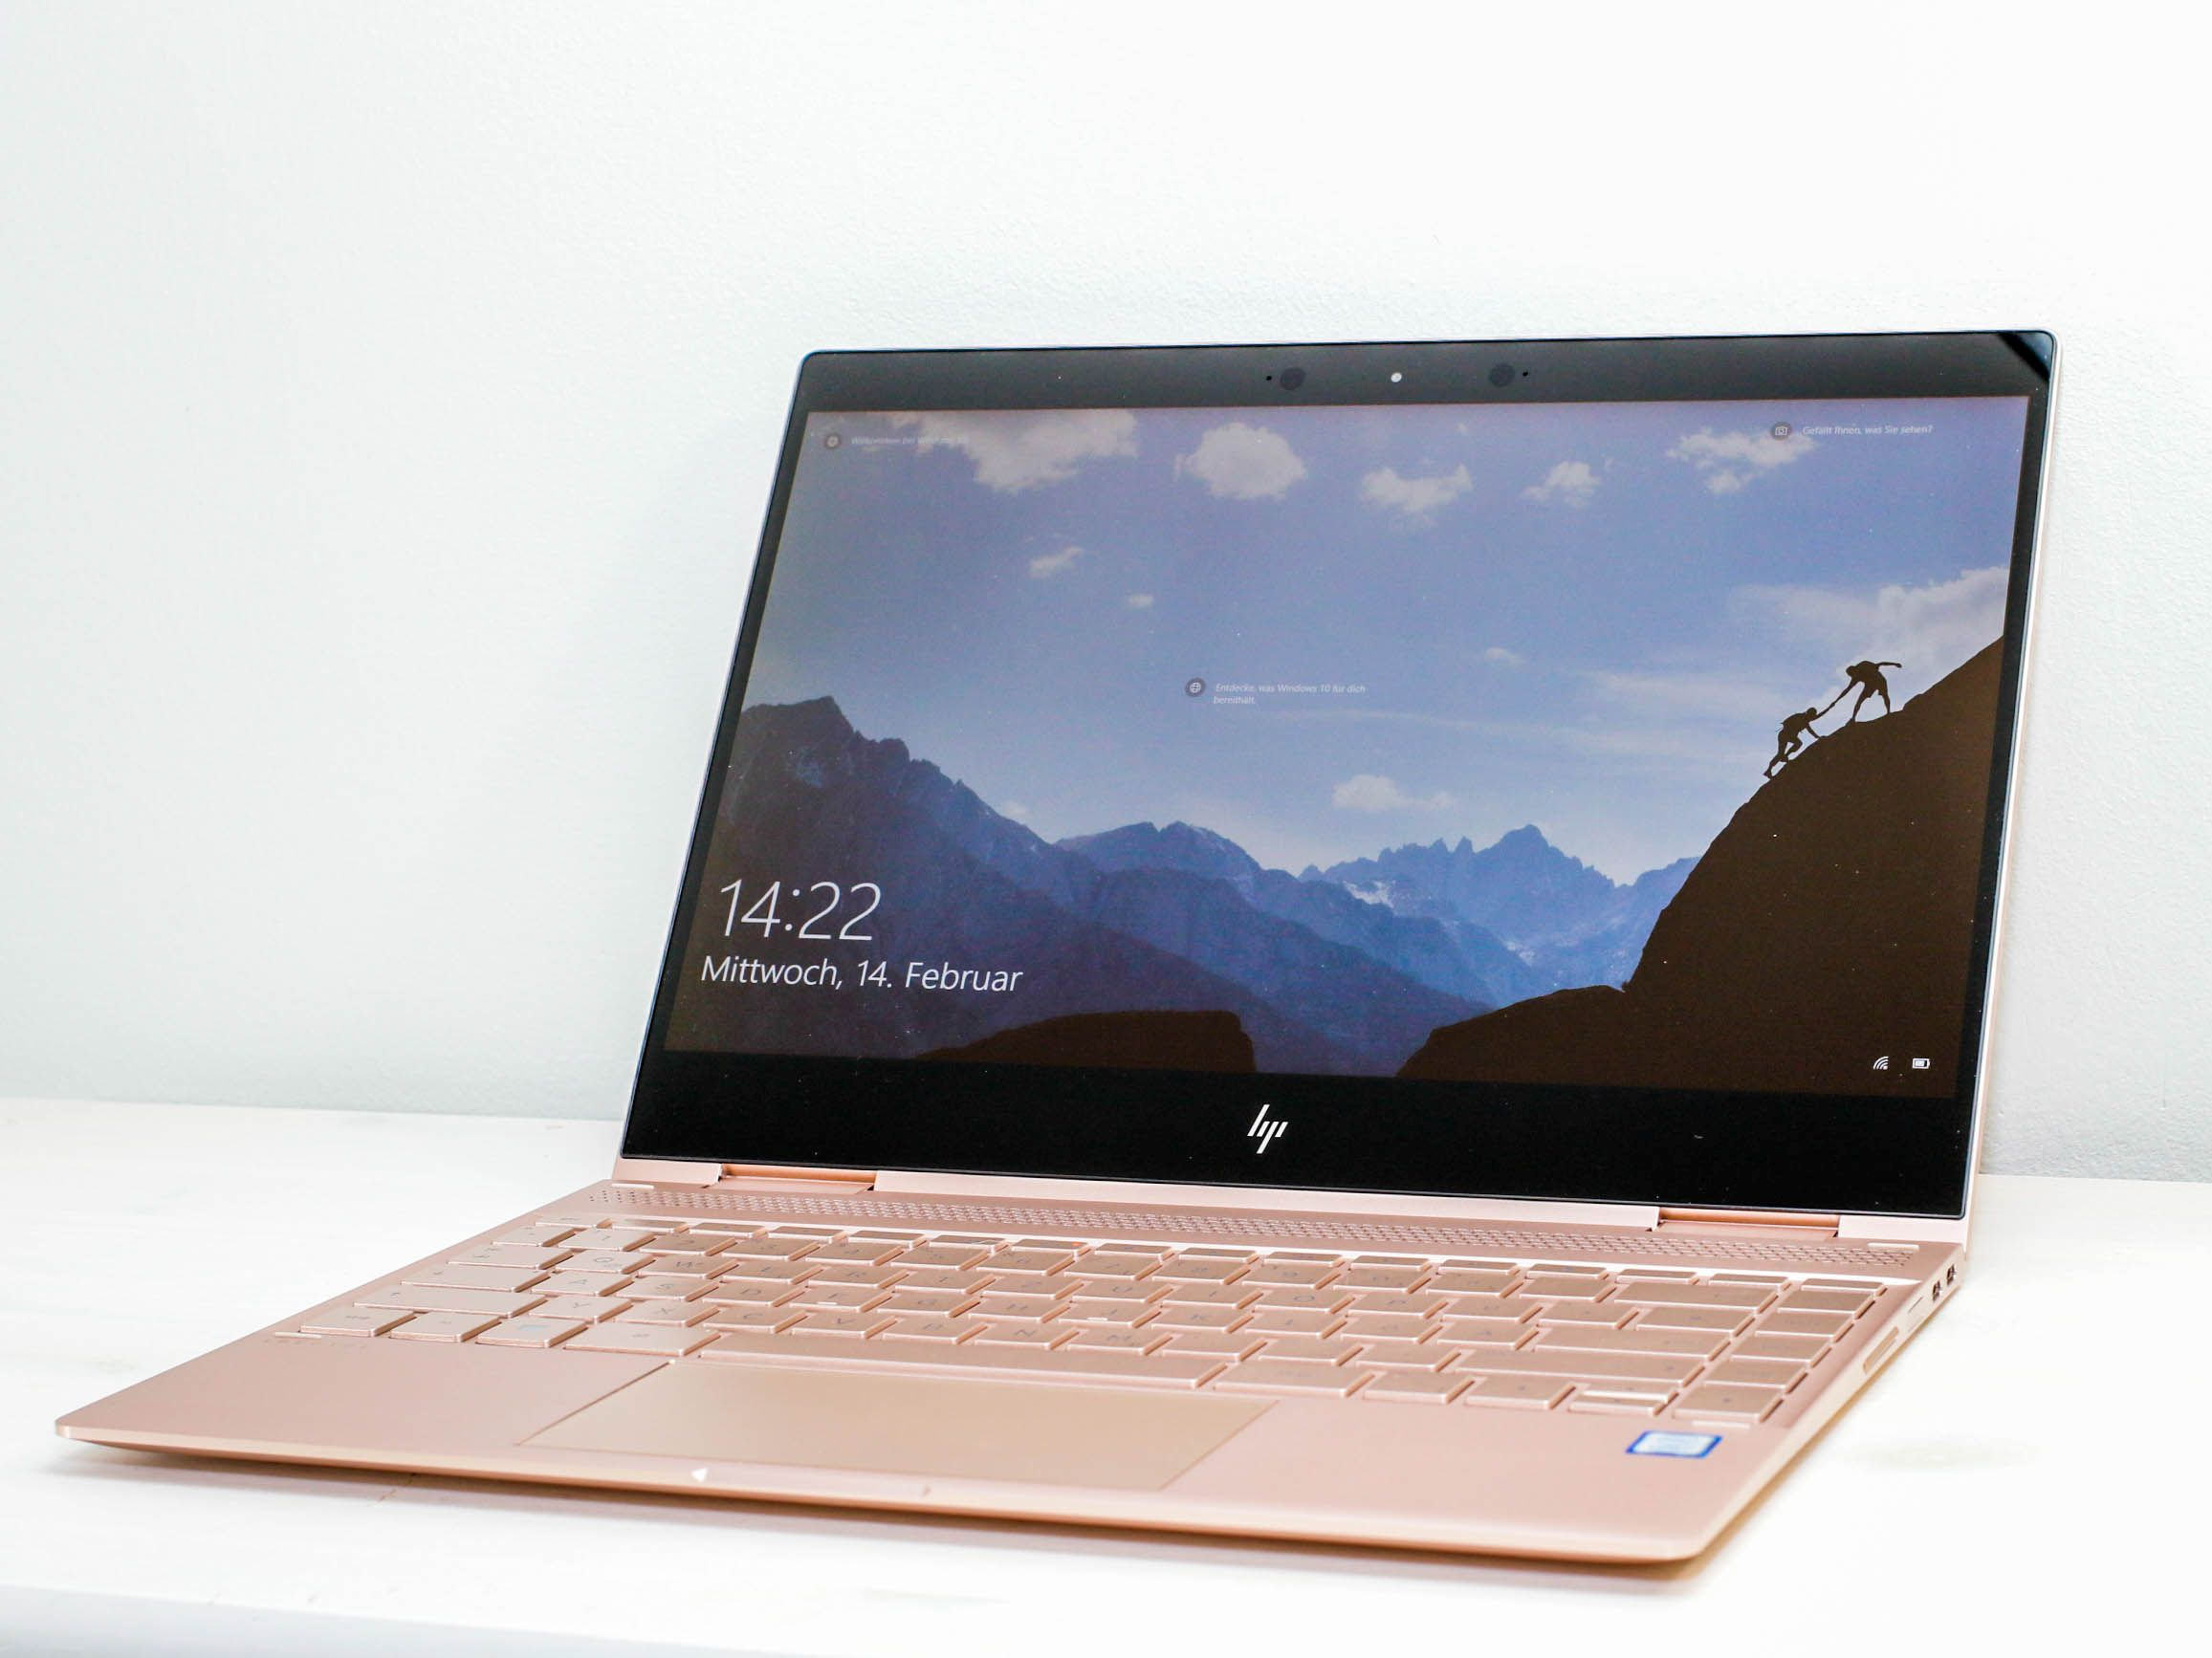 HP Spectre Pro x360 G2 Intel WLAN Drivers for Windows